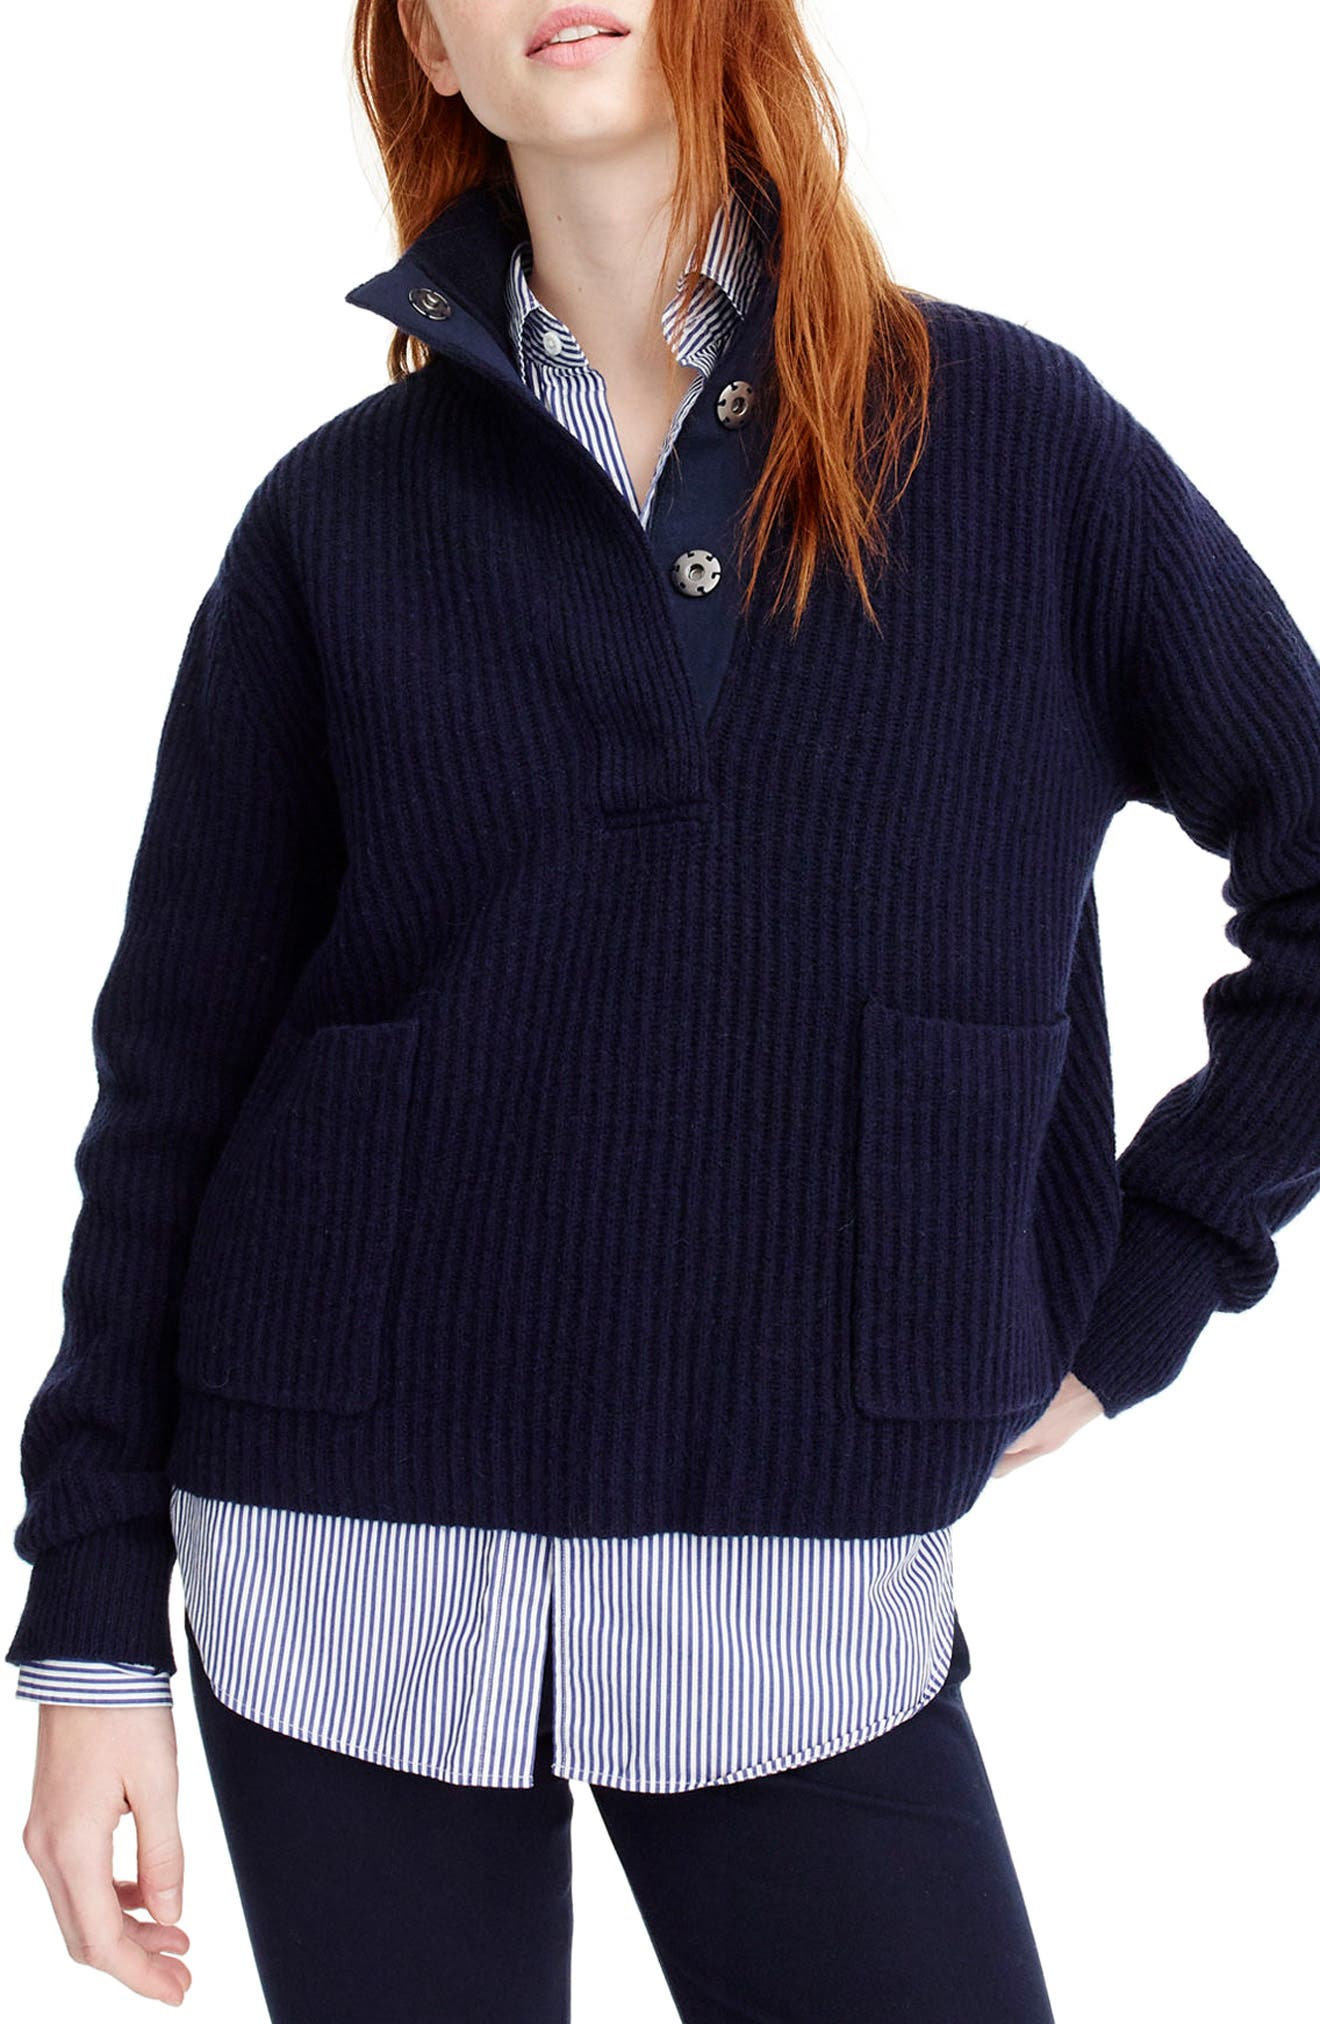 J.Crew Kay Lambswool Pullover Sweater,                             Main thumbnail 1, color,                             Navy